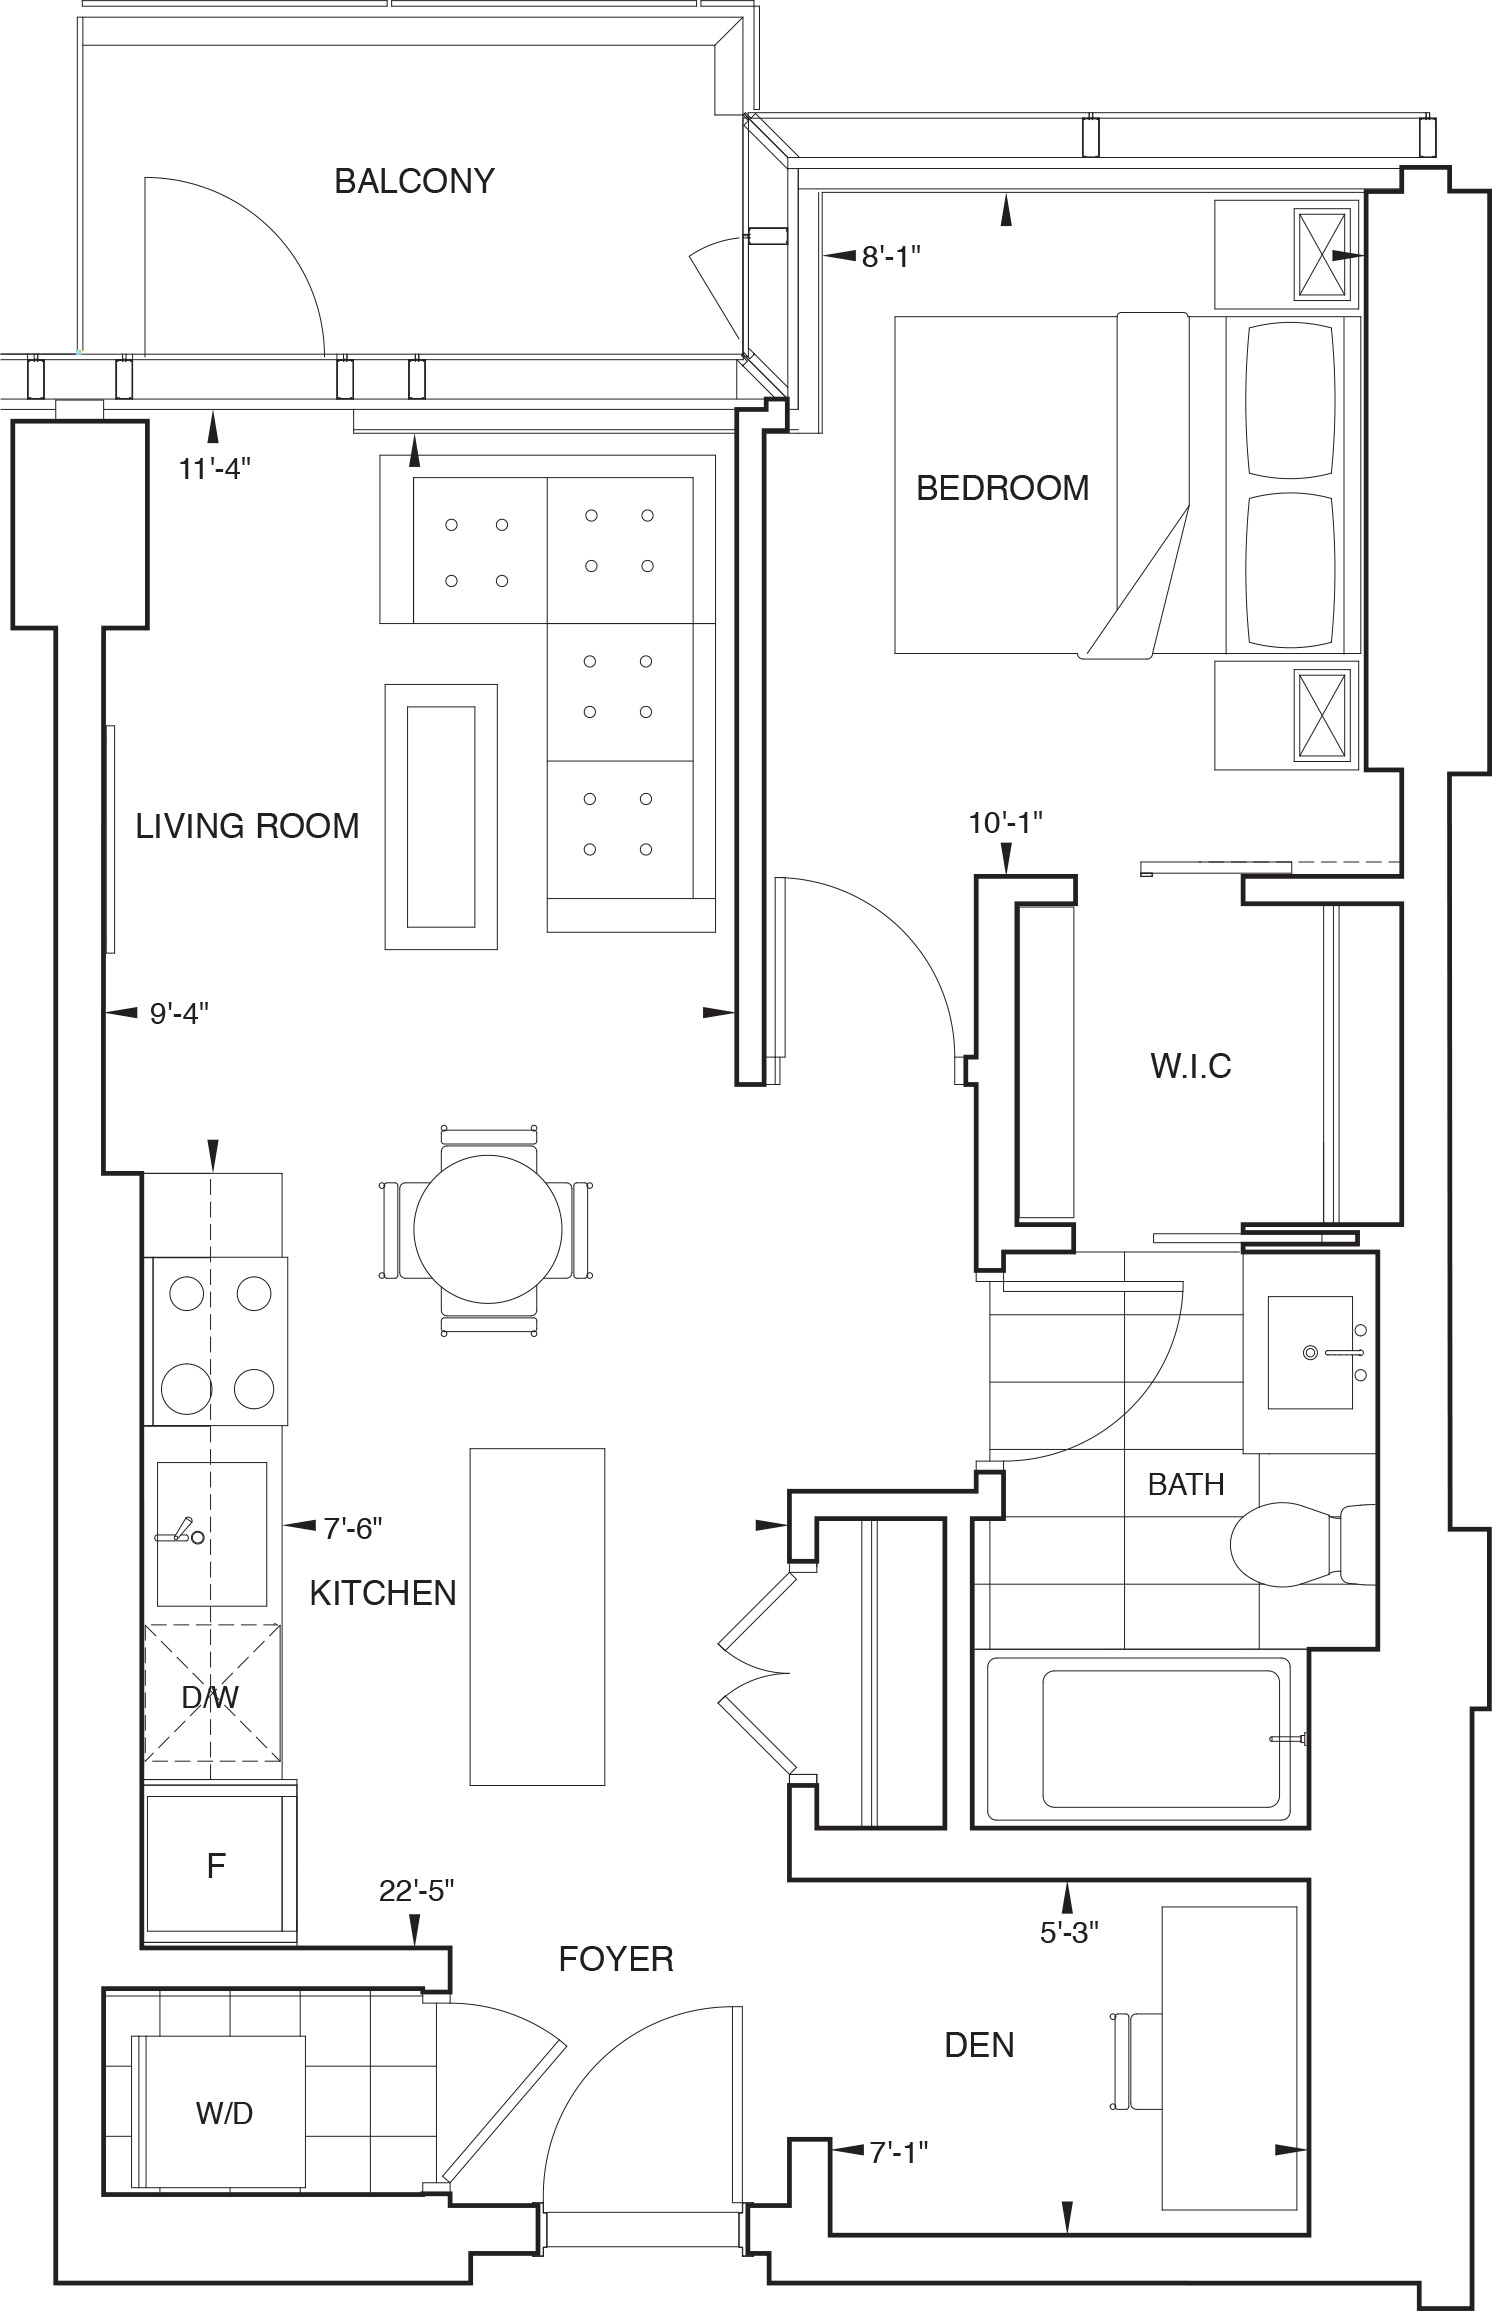 Floorplan for SKY Residence C1